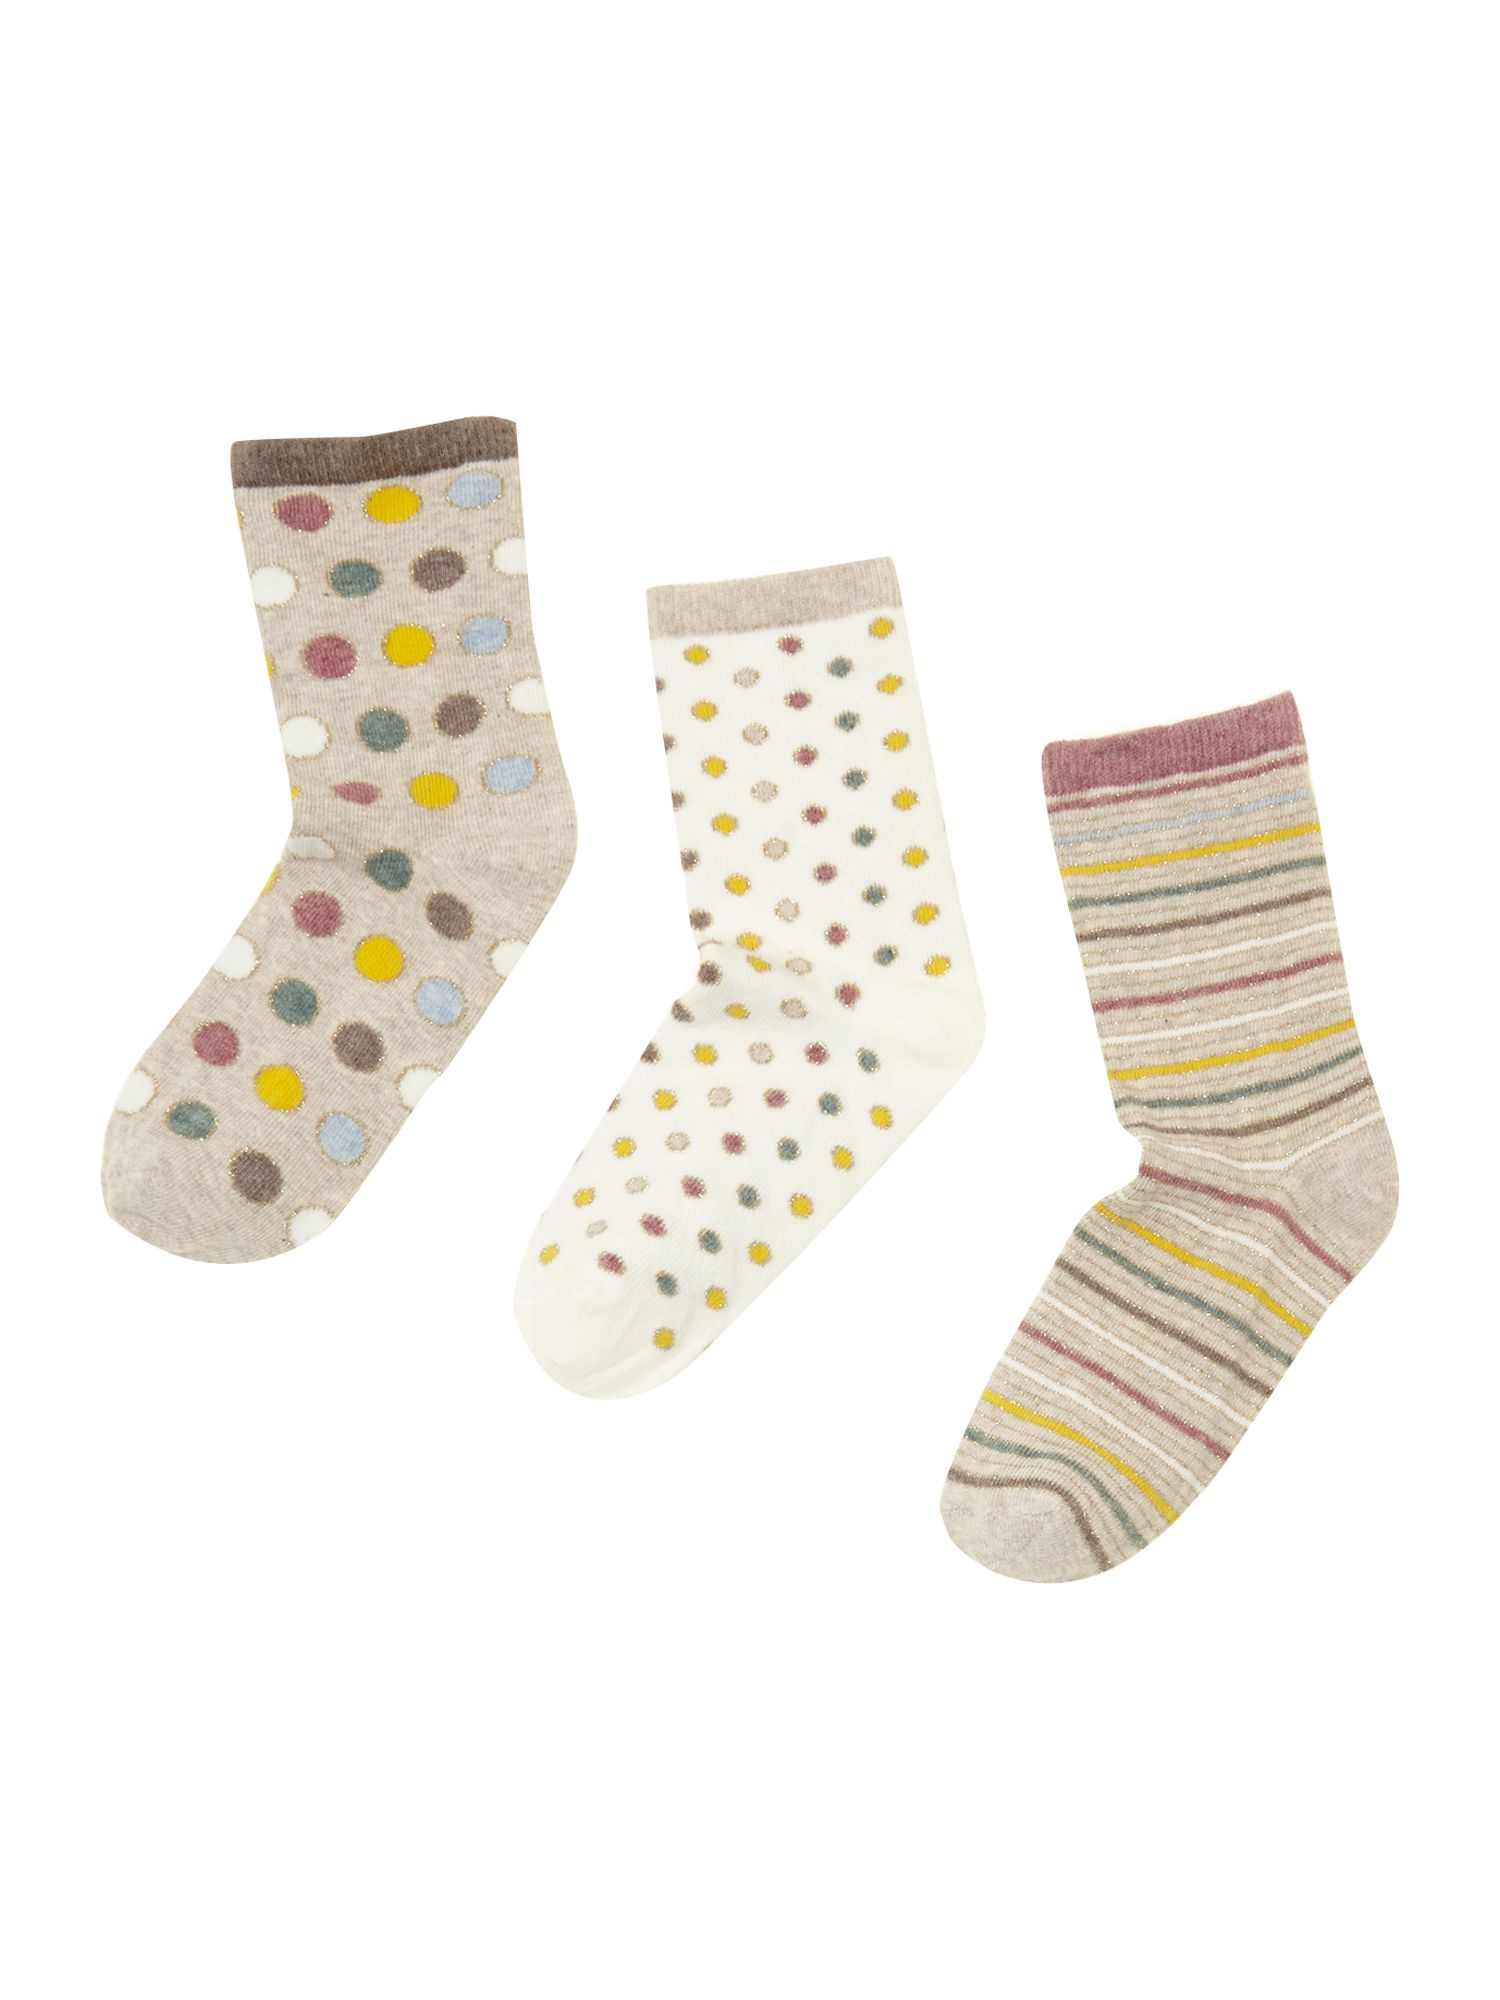 Girls 3 pack glitter socks